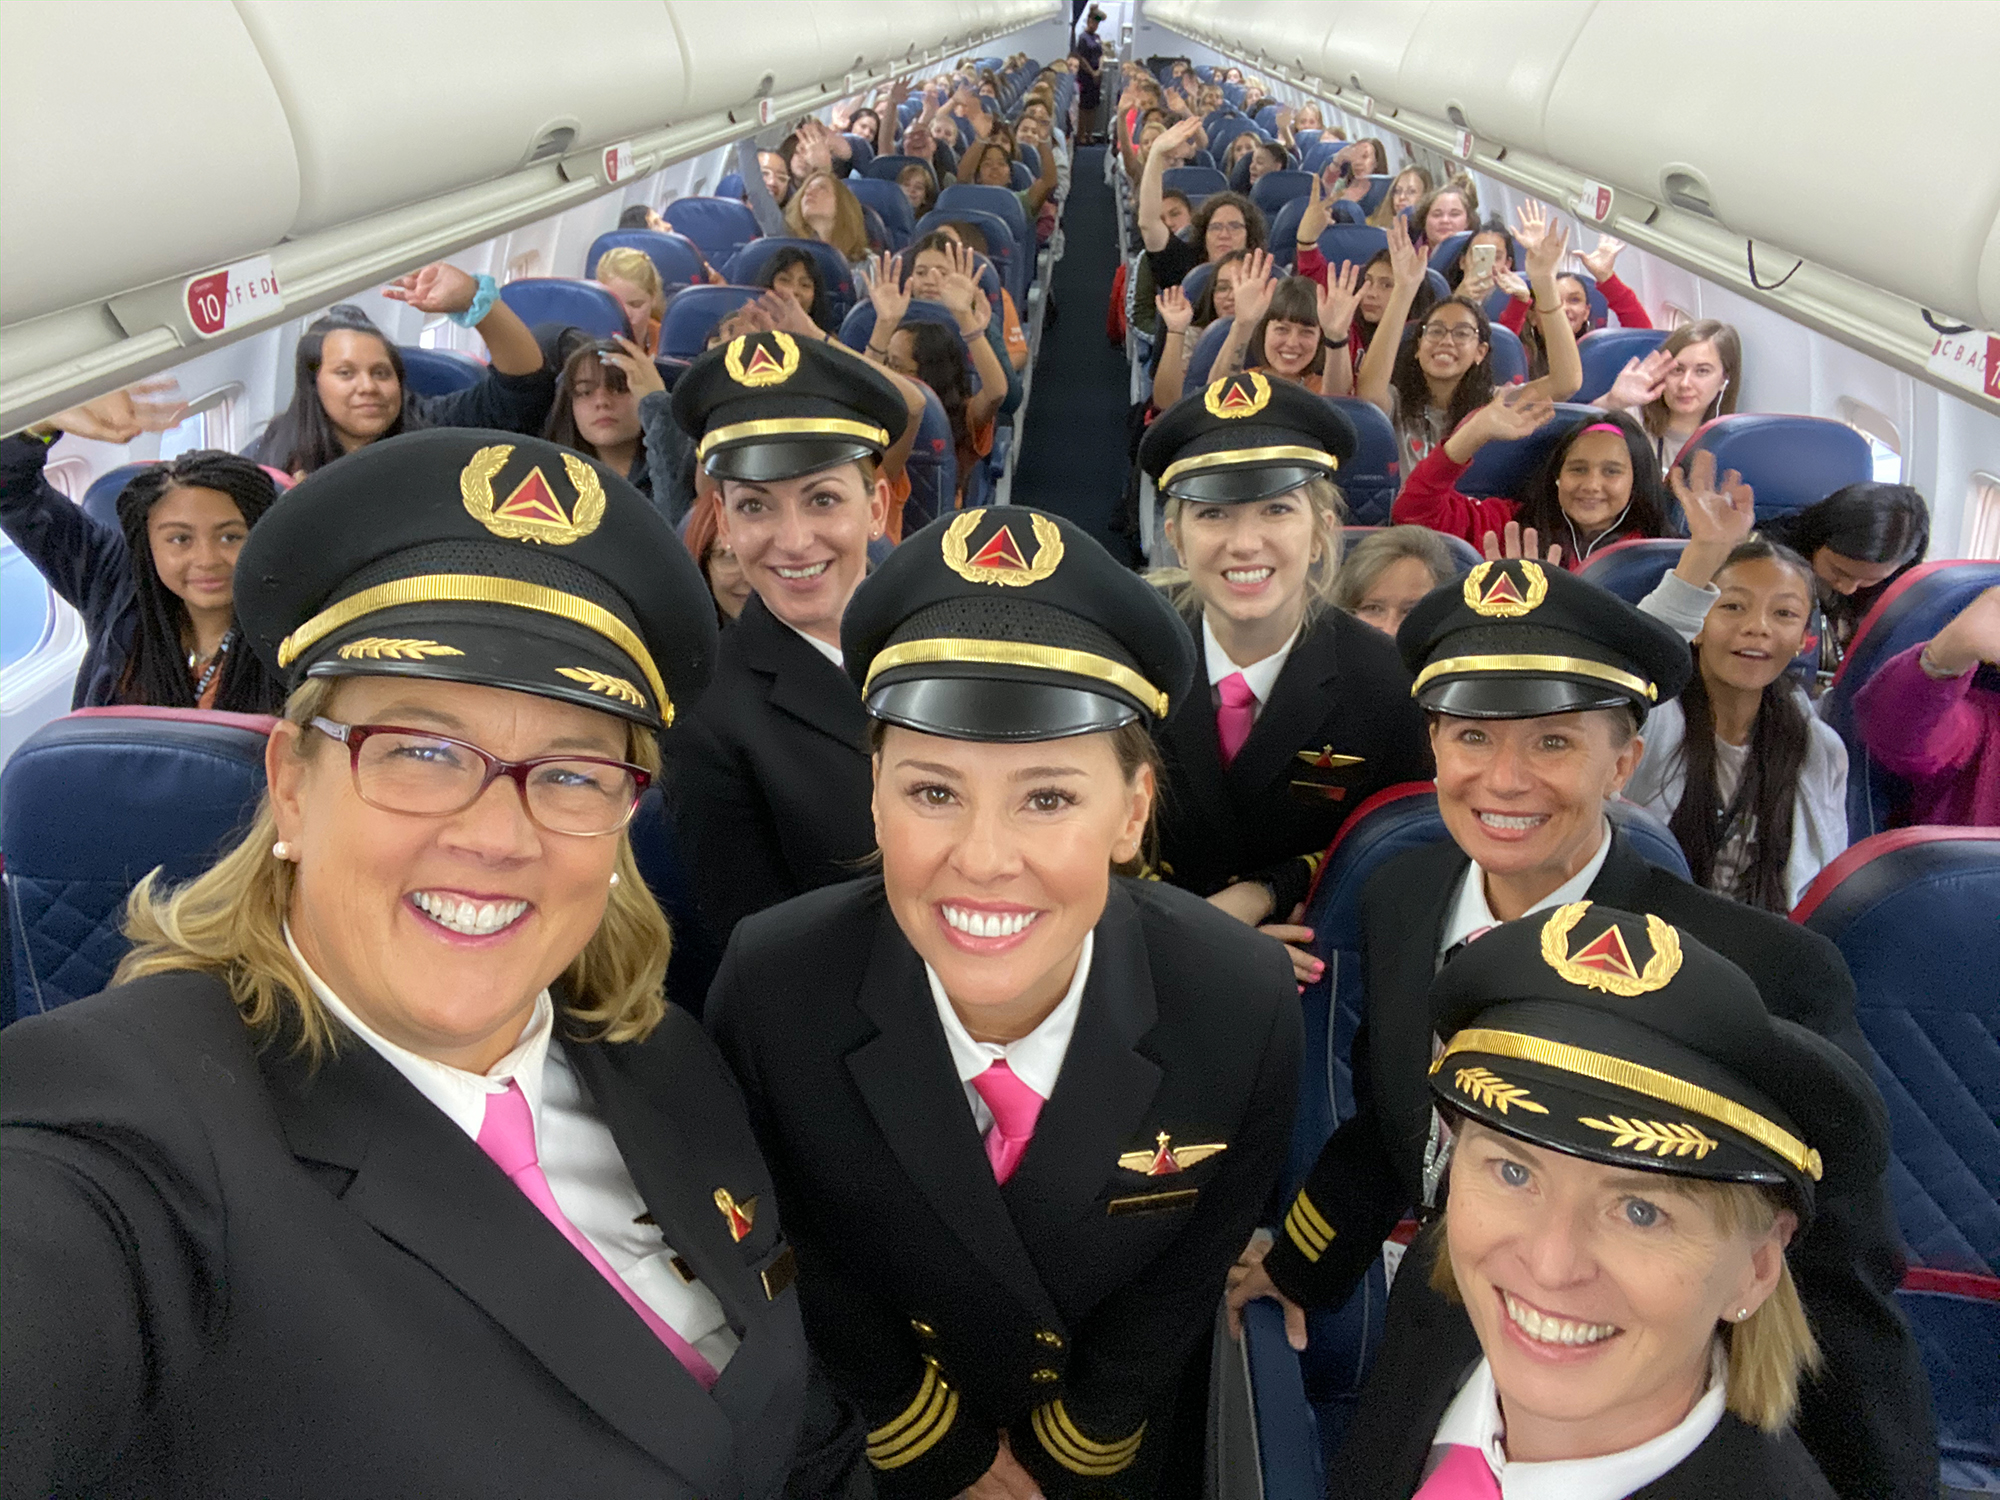 Female crew and passengers onboard a Delta flight headed to NASA in Houston in October 2019 as part of the company's initiative to close the gender gap in aviation.